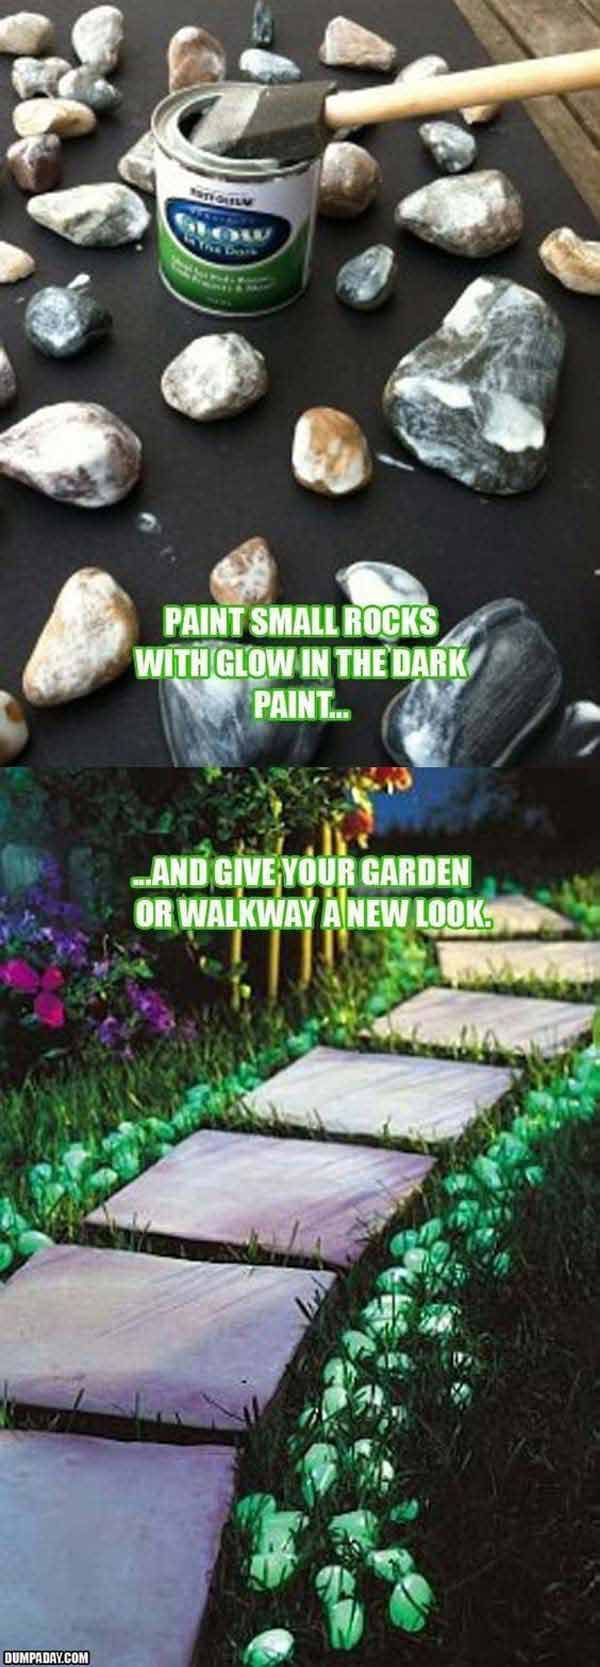 Give your walkway a new look by painting small rocks with glow in the dark paint: